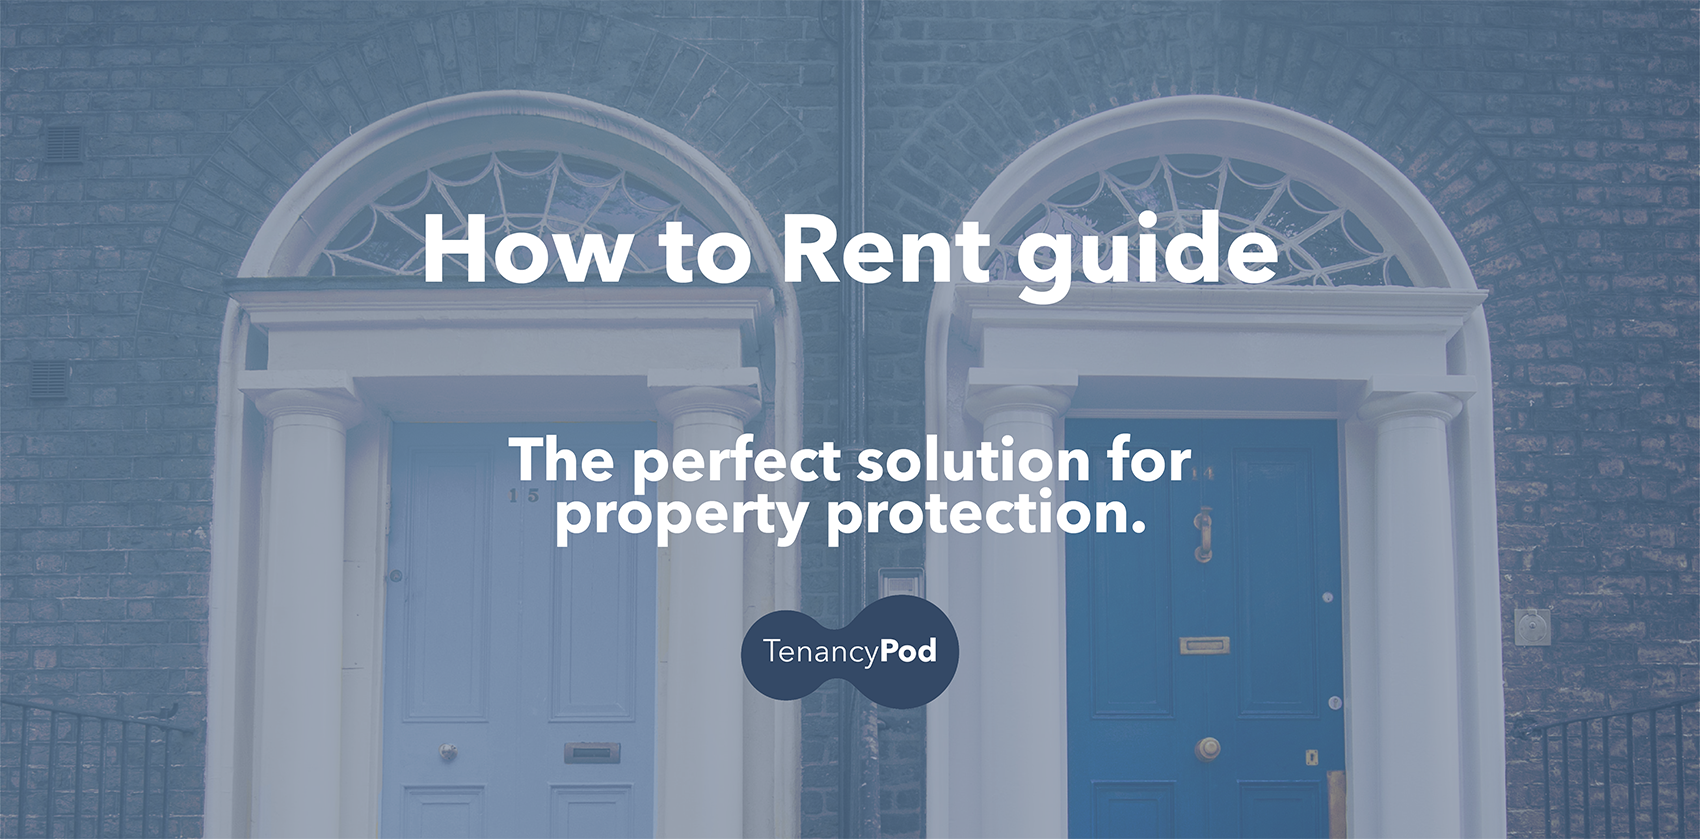 TenancyPod - How to Rent guide